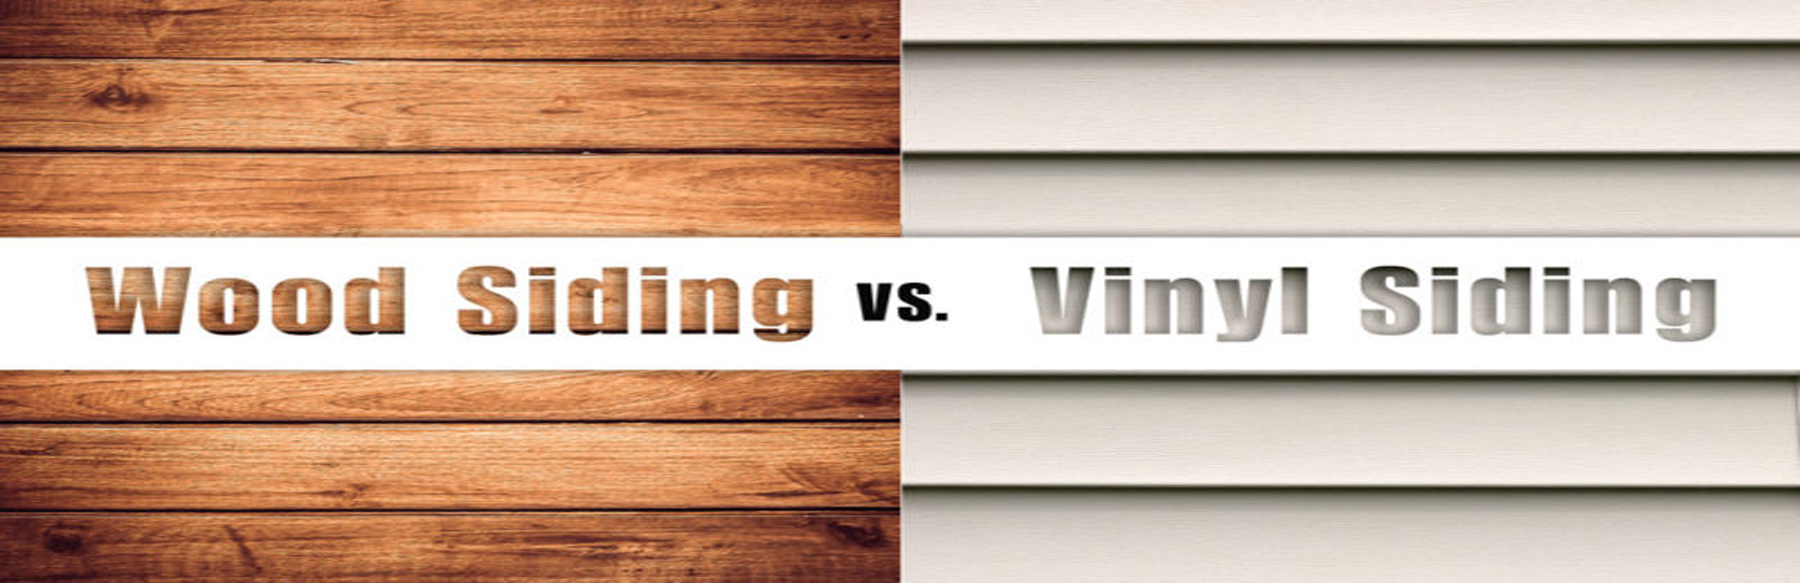 wood siding vs vinyl siding pros and cons powell builders